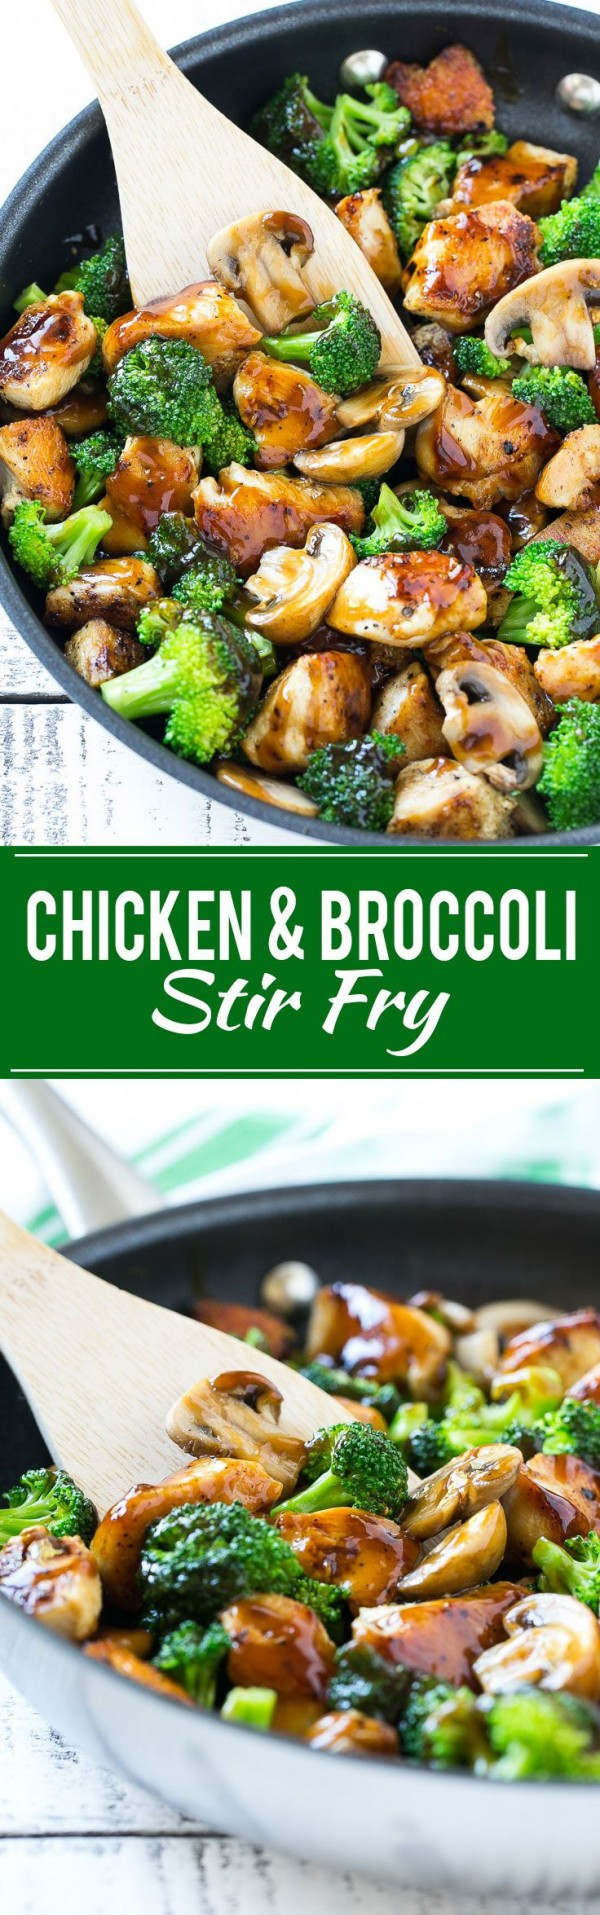 20 Unforgettable Chicken Recipes for a Romantic Dinner for Two - Get the recipe Chicken and Broccoli Stir Fry @recipes_to_go